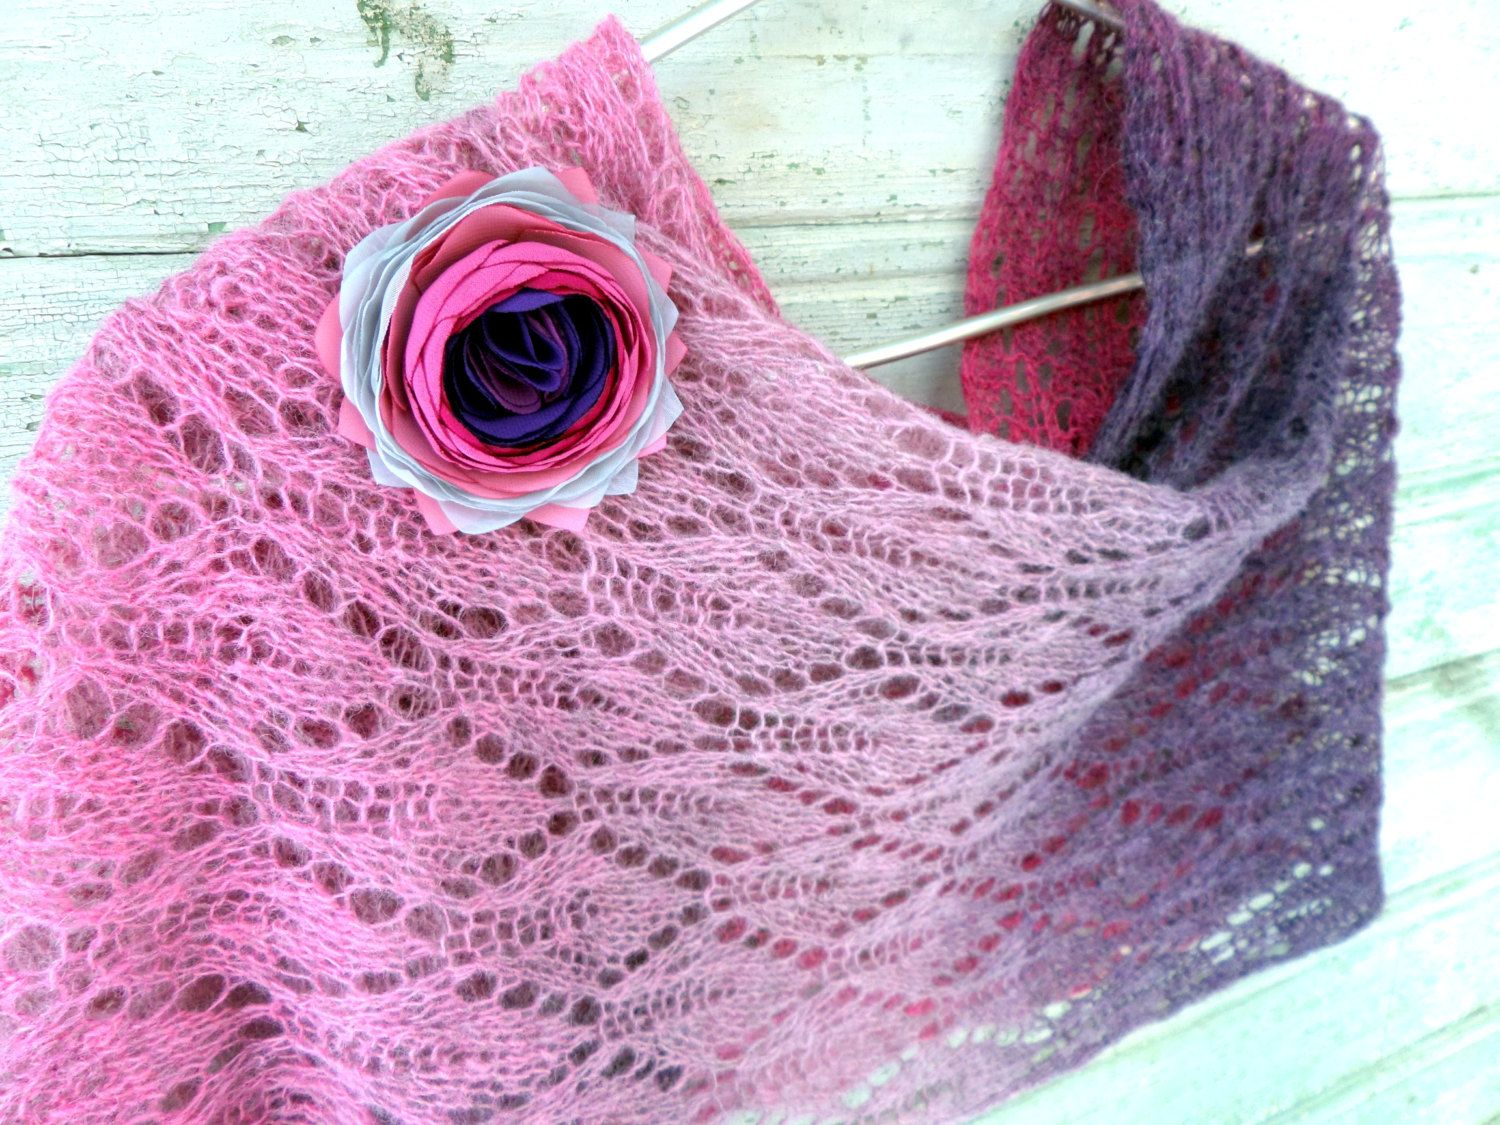 Wedding, Lace knit scarf, rustic shoulder wrap, knitting lace scarf , Shawl with brooch,  Bridal knit lace shawl, Purple knitted lace shawl by LidiaAndVary on Etsy